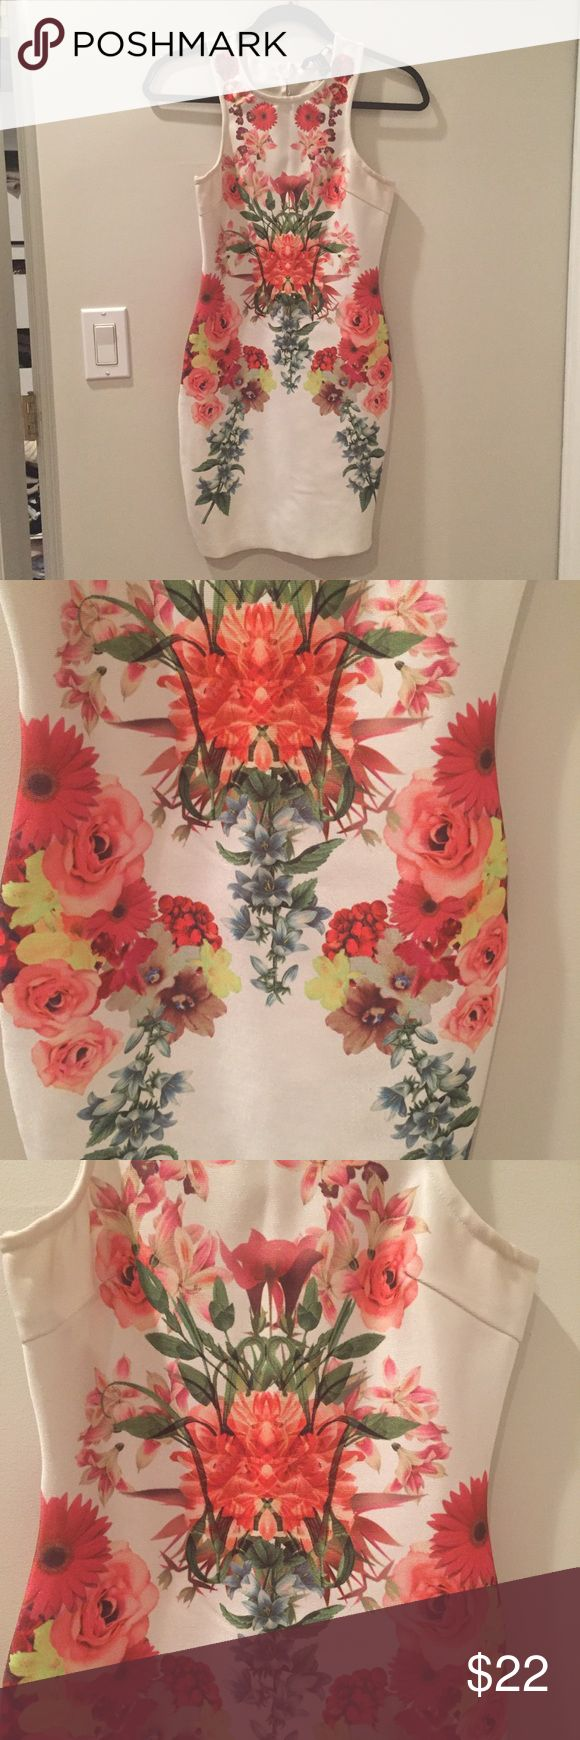 Forever 21 Bodycon dress size small Floral This is a super luxe design. Right Bandage material sucks you in for a flattering shape. Zippered back. Really beautiful mirrored Floral print. Worn once in Miami and I got a ton of compliments. Super expensive looking. Forever 21 Dresses Mini